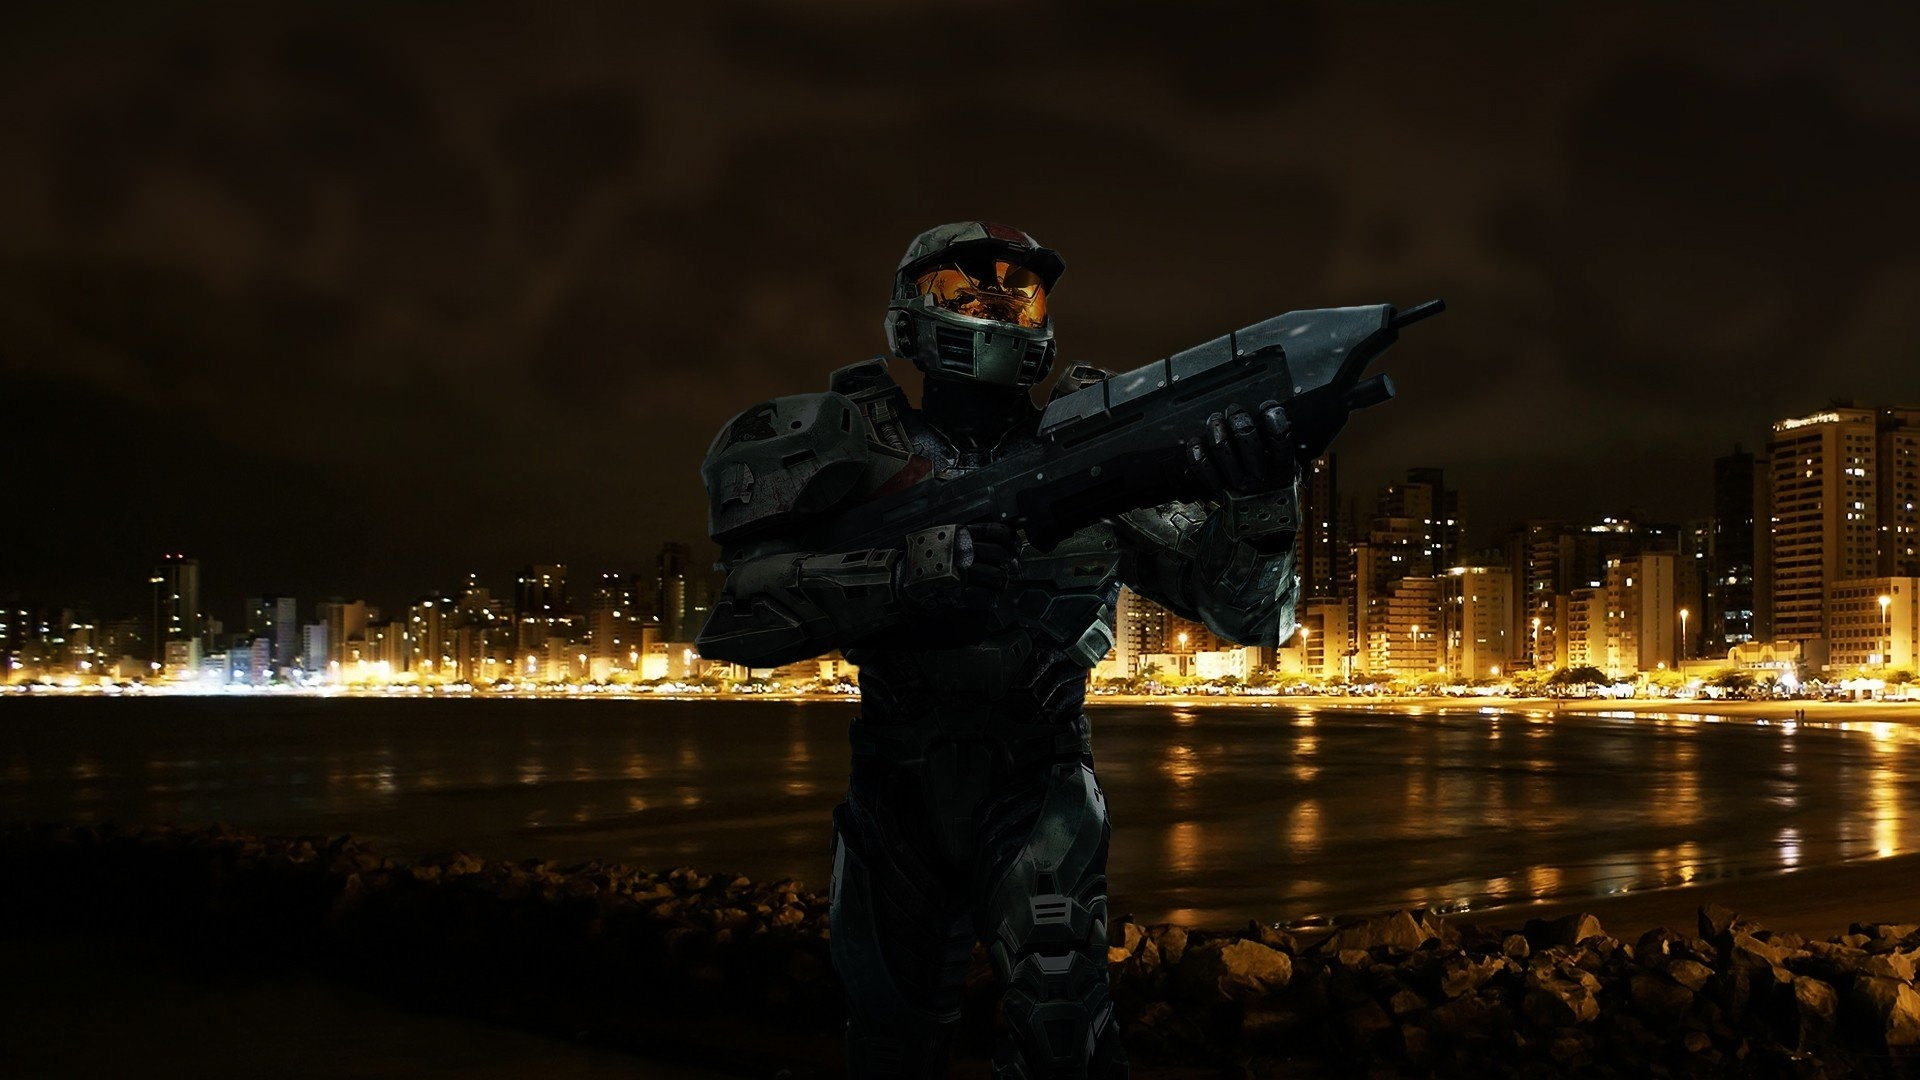 Halo Soldier at Beach Wallpaper